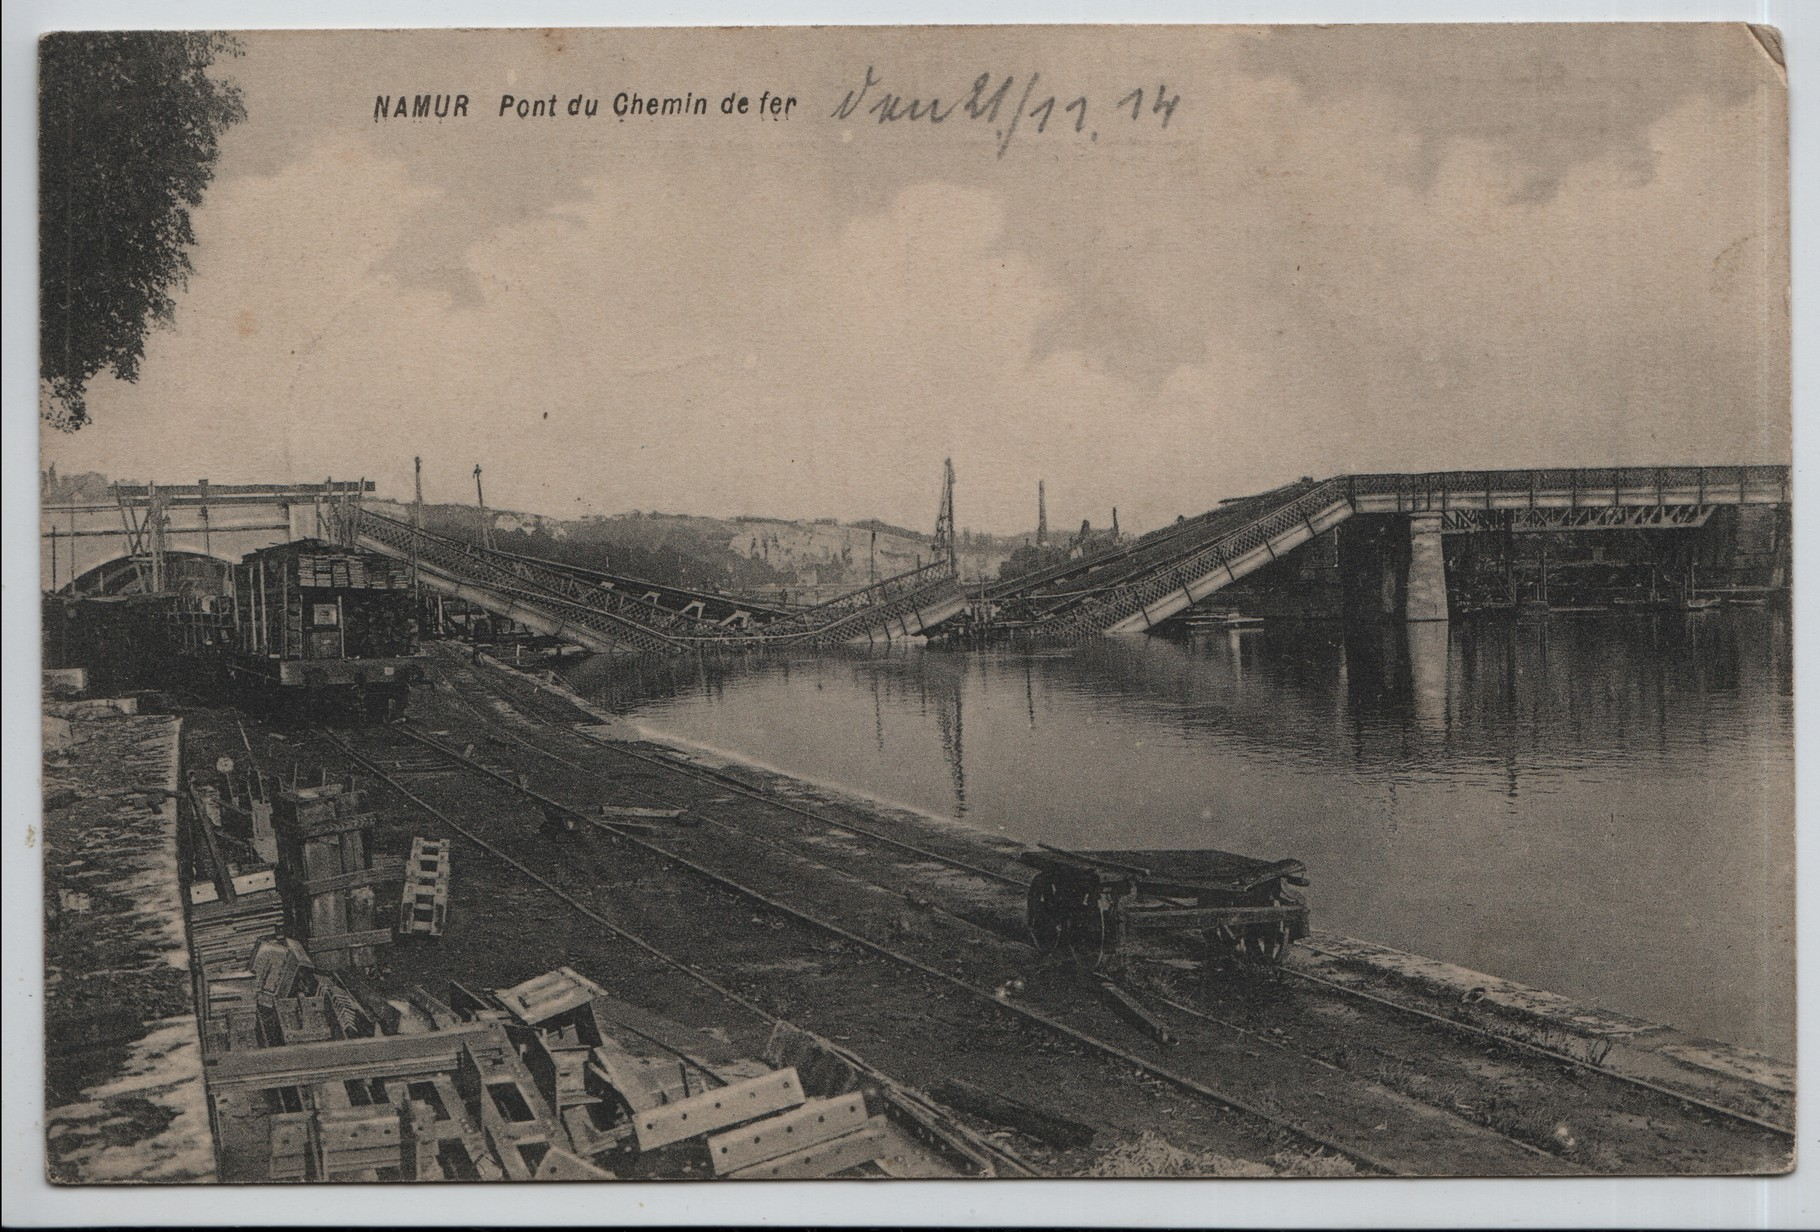 18. Namur railway bridge 21.11.1914